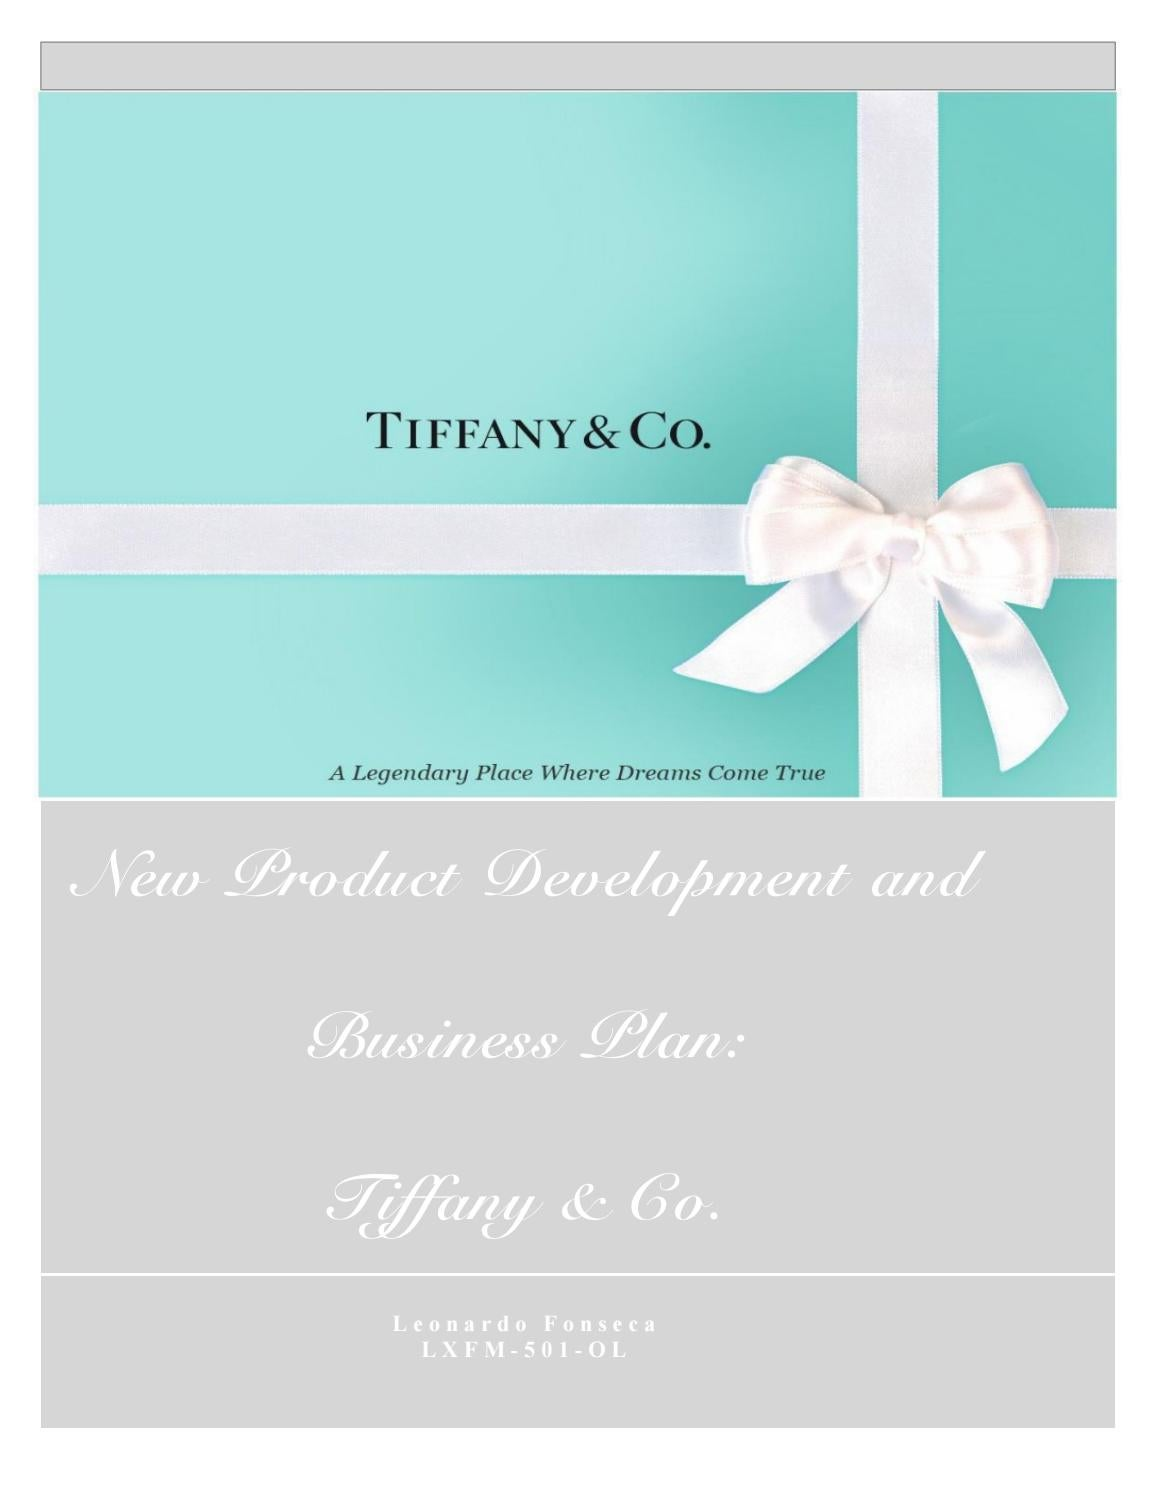 New Product Development and Business Plan for Tiffany & Co. by Leo ...